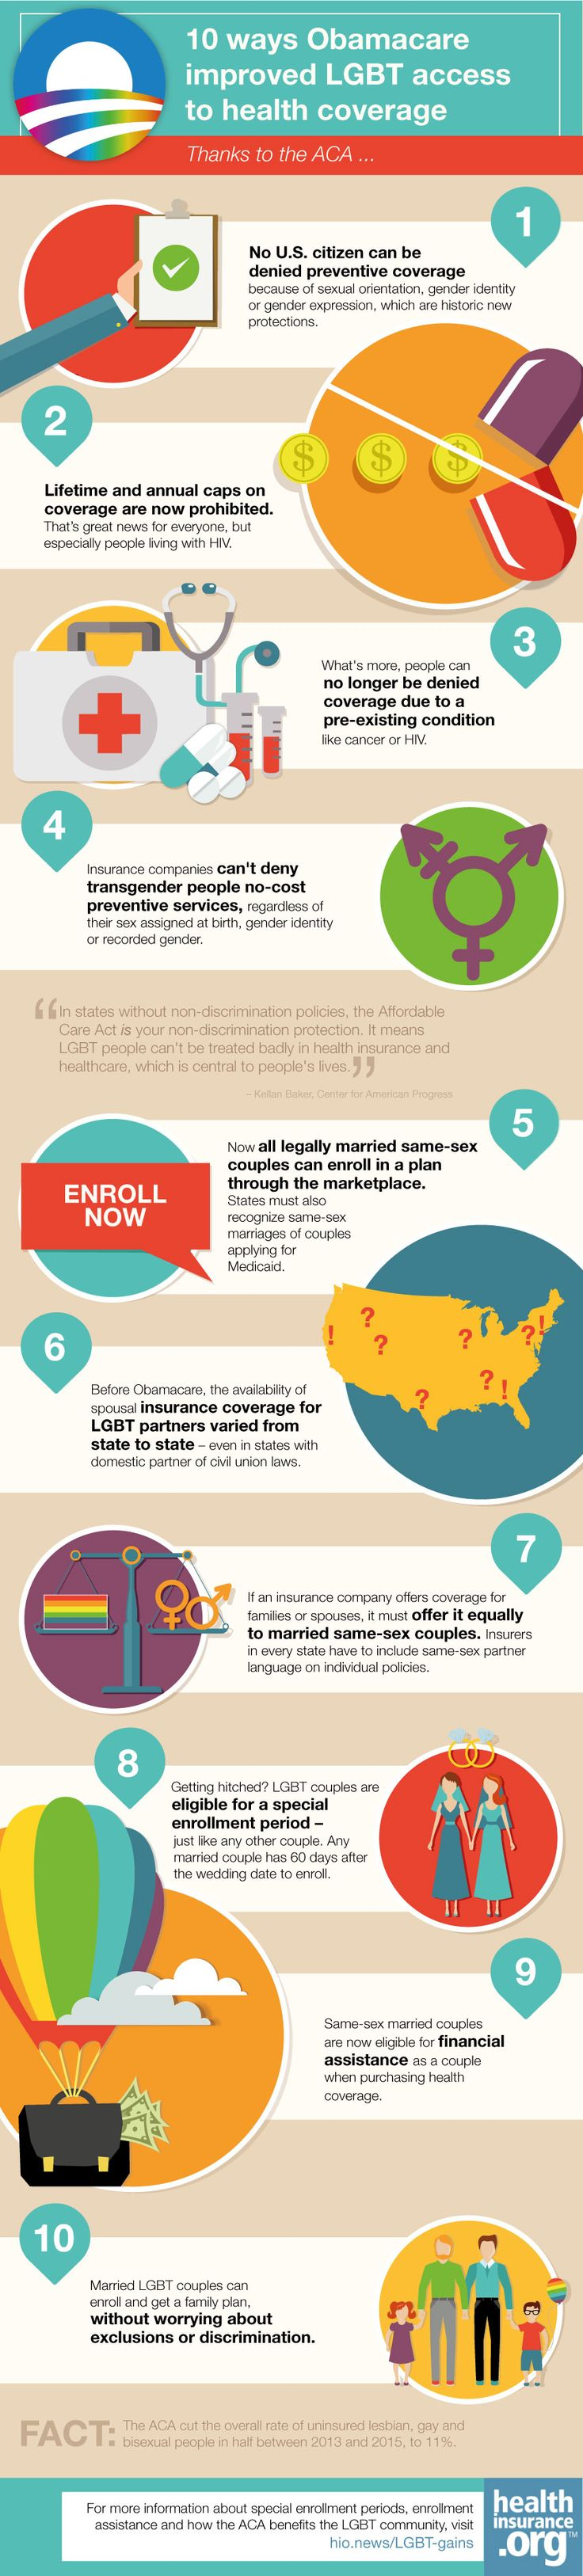 10 ways Obamacare improved LGBT access to health coverage http://www.healthinsurance.org/10-ways-obamacare-improved-lgbt-access-to-health-coverage/